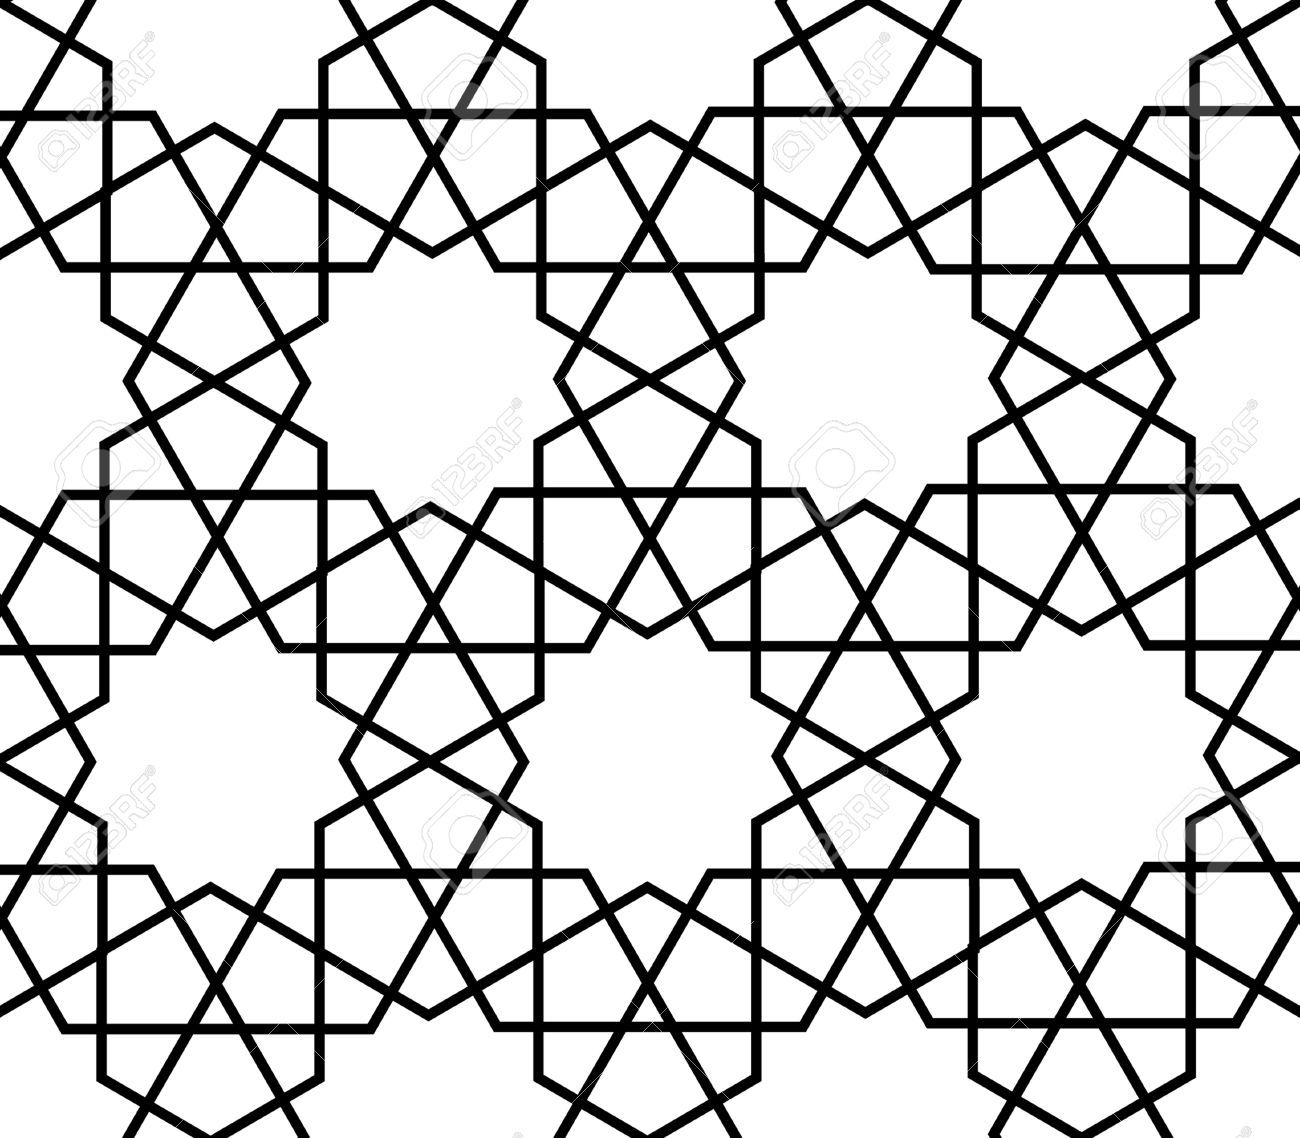 Image result for simple islamic art patterns | Zelij pattern ... for Simple Islamic Designs  587fsj